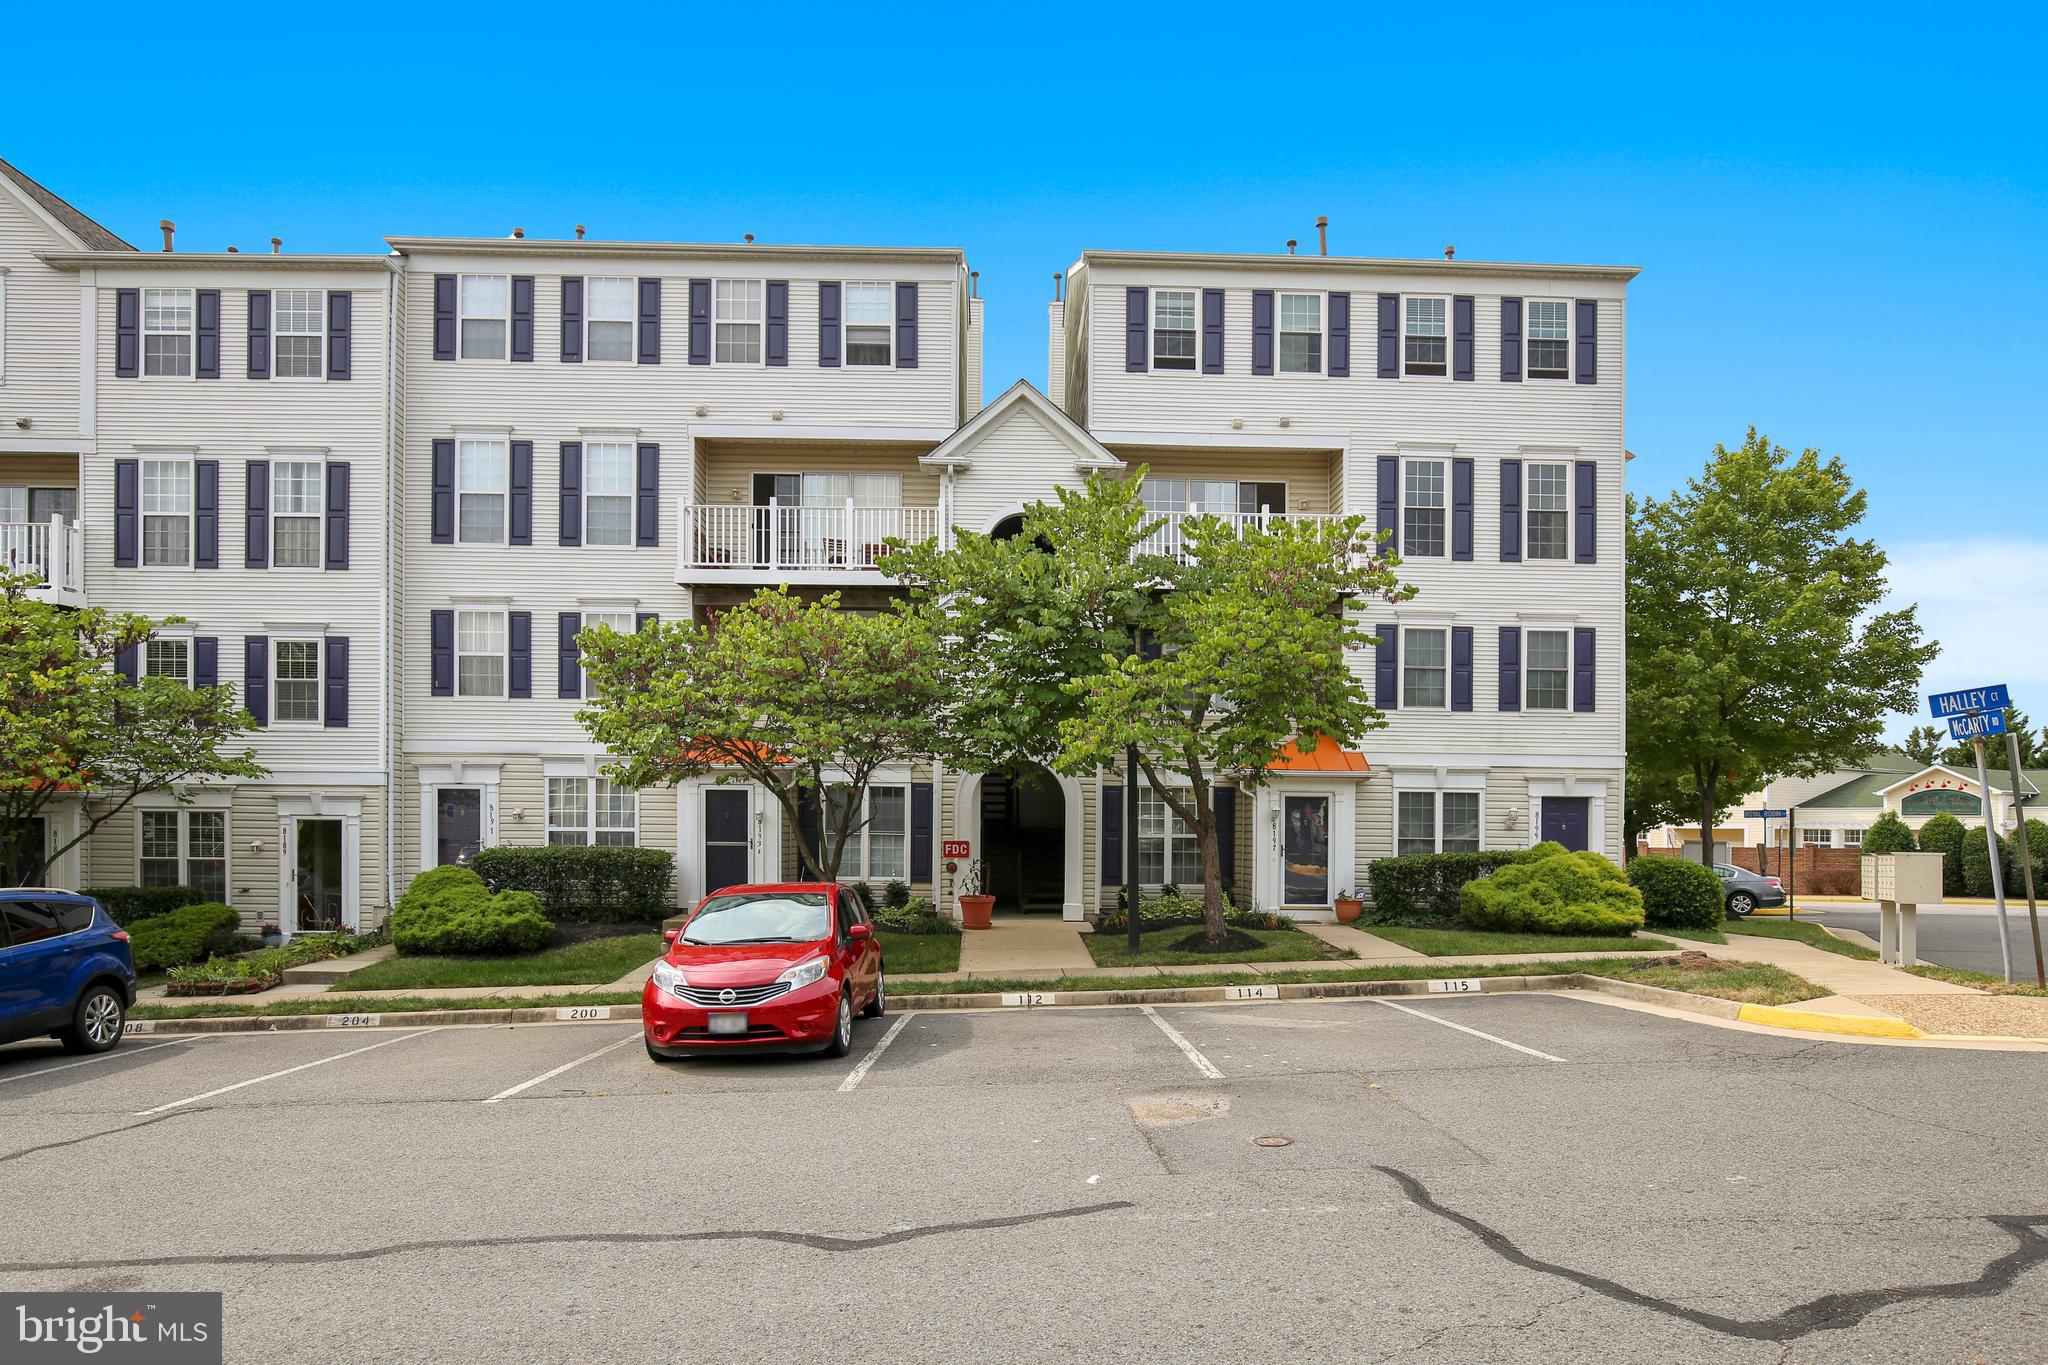 JUST REDUCED! Newly updated two-level 2 bed/2.5 bath condo in Lorton, turn-key and ready for you to move in! Lots of windows offer natural light, and balcony gives you private outdoor space with no maintenance! Main living areas feature wood floors and the gas fireplace is perfect for those chilly fall nights that are fast approaching.  Kitchen has newer appliances and opens to living and dining areas for easy entertaining! Upstairs, two large bedrooms each have private baths.  Located close to shopping, dining, major commuter routes, and public transportation.